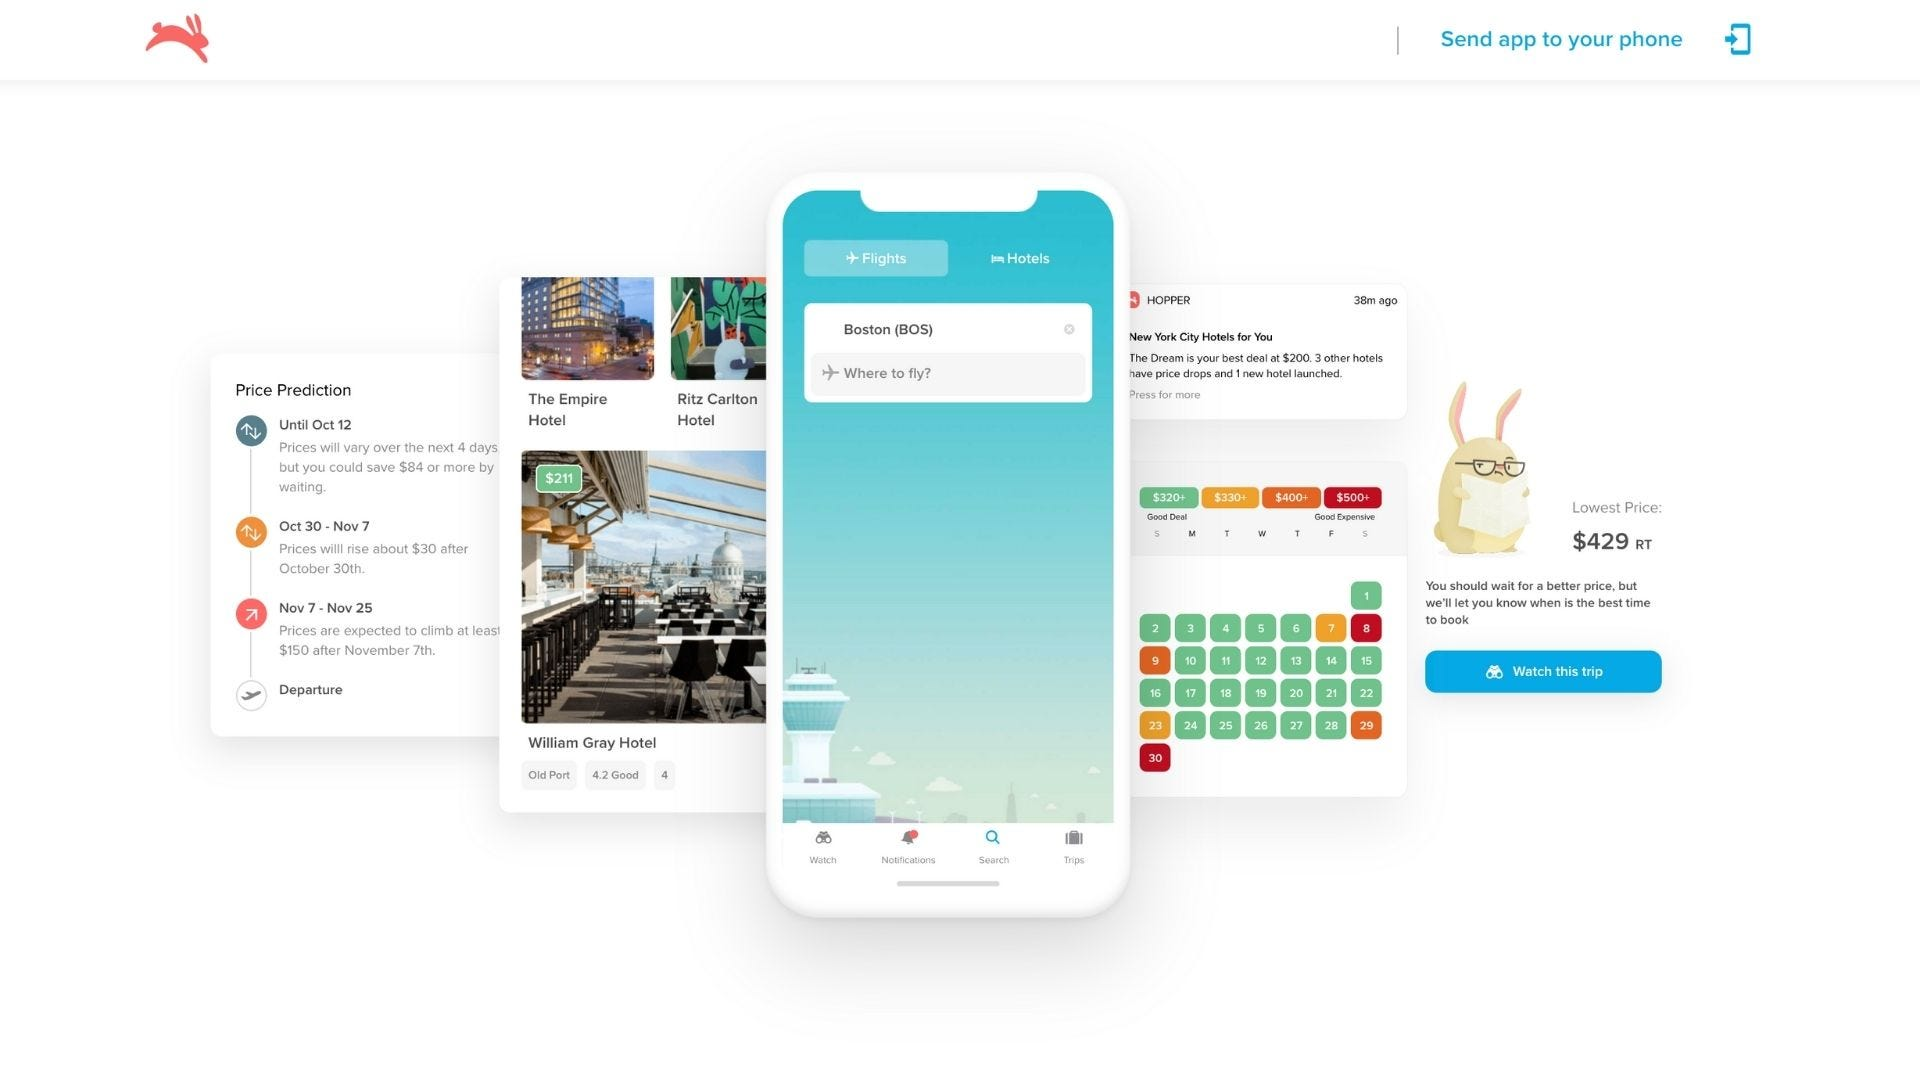 Several smartphones show features of the flight booking app Hopper.